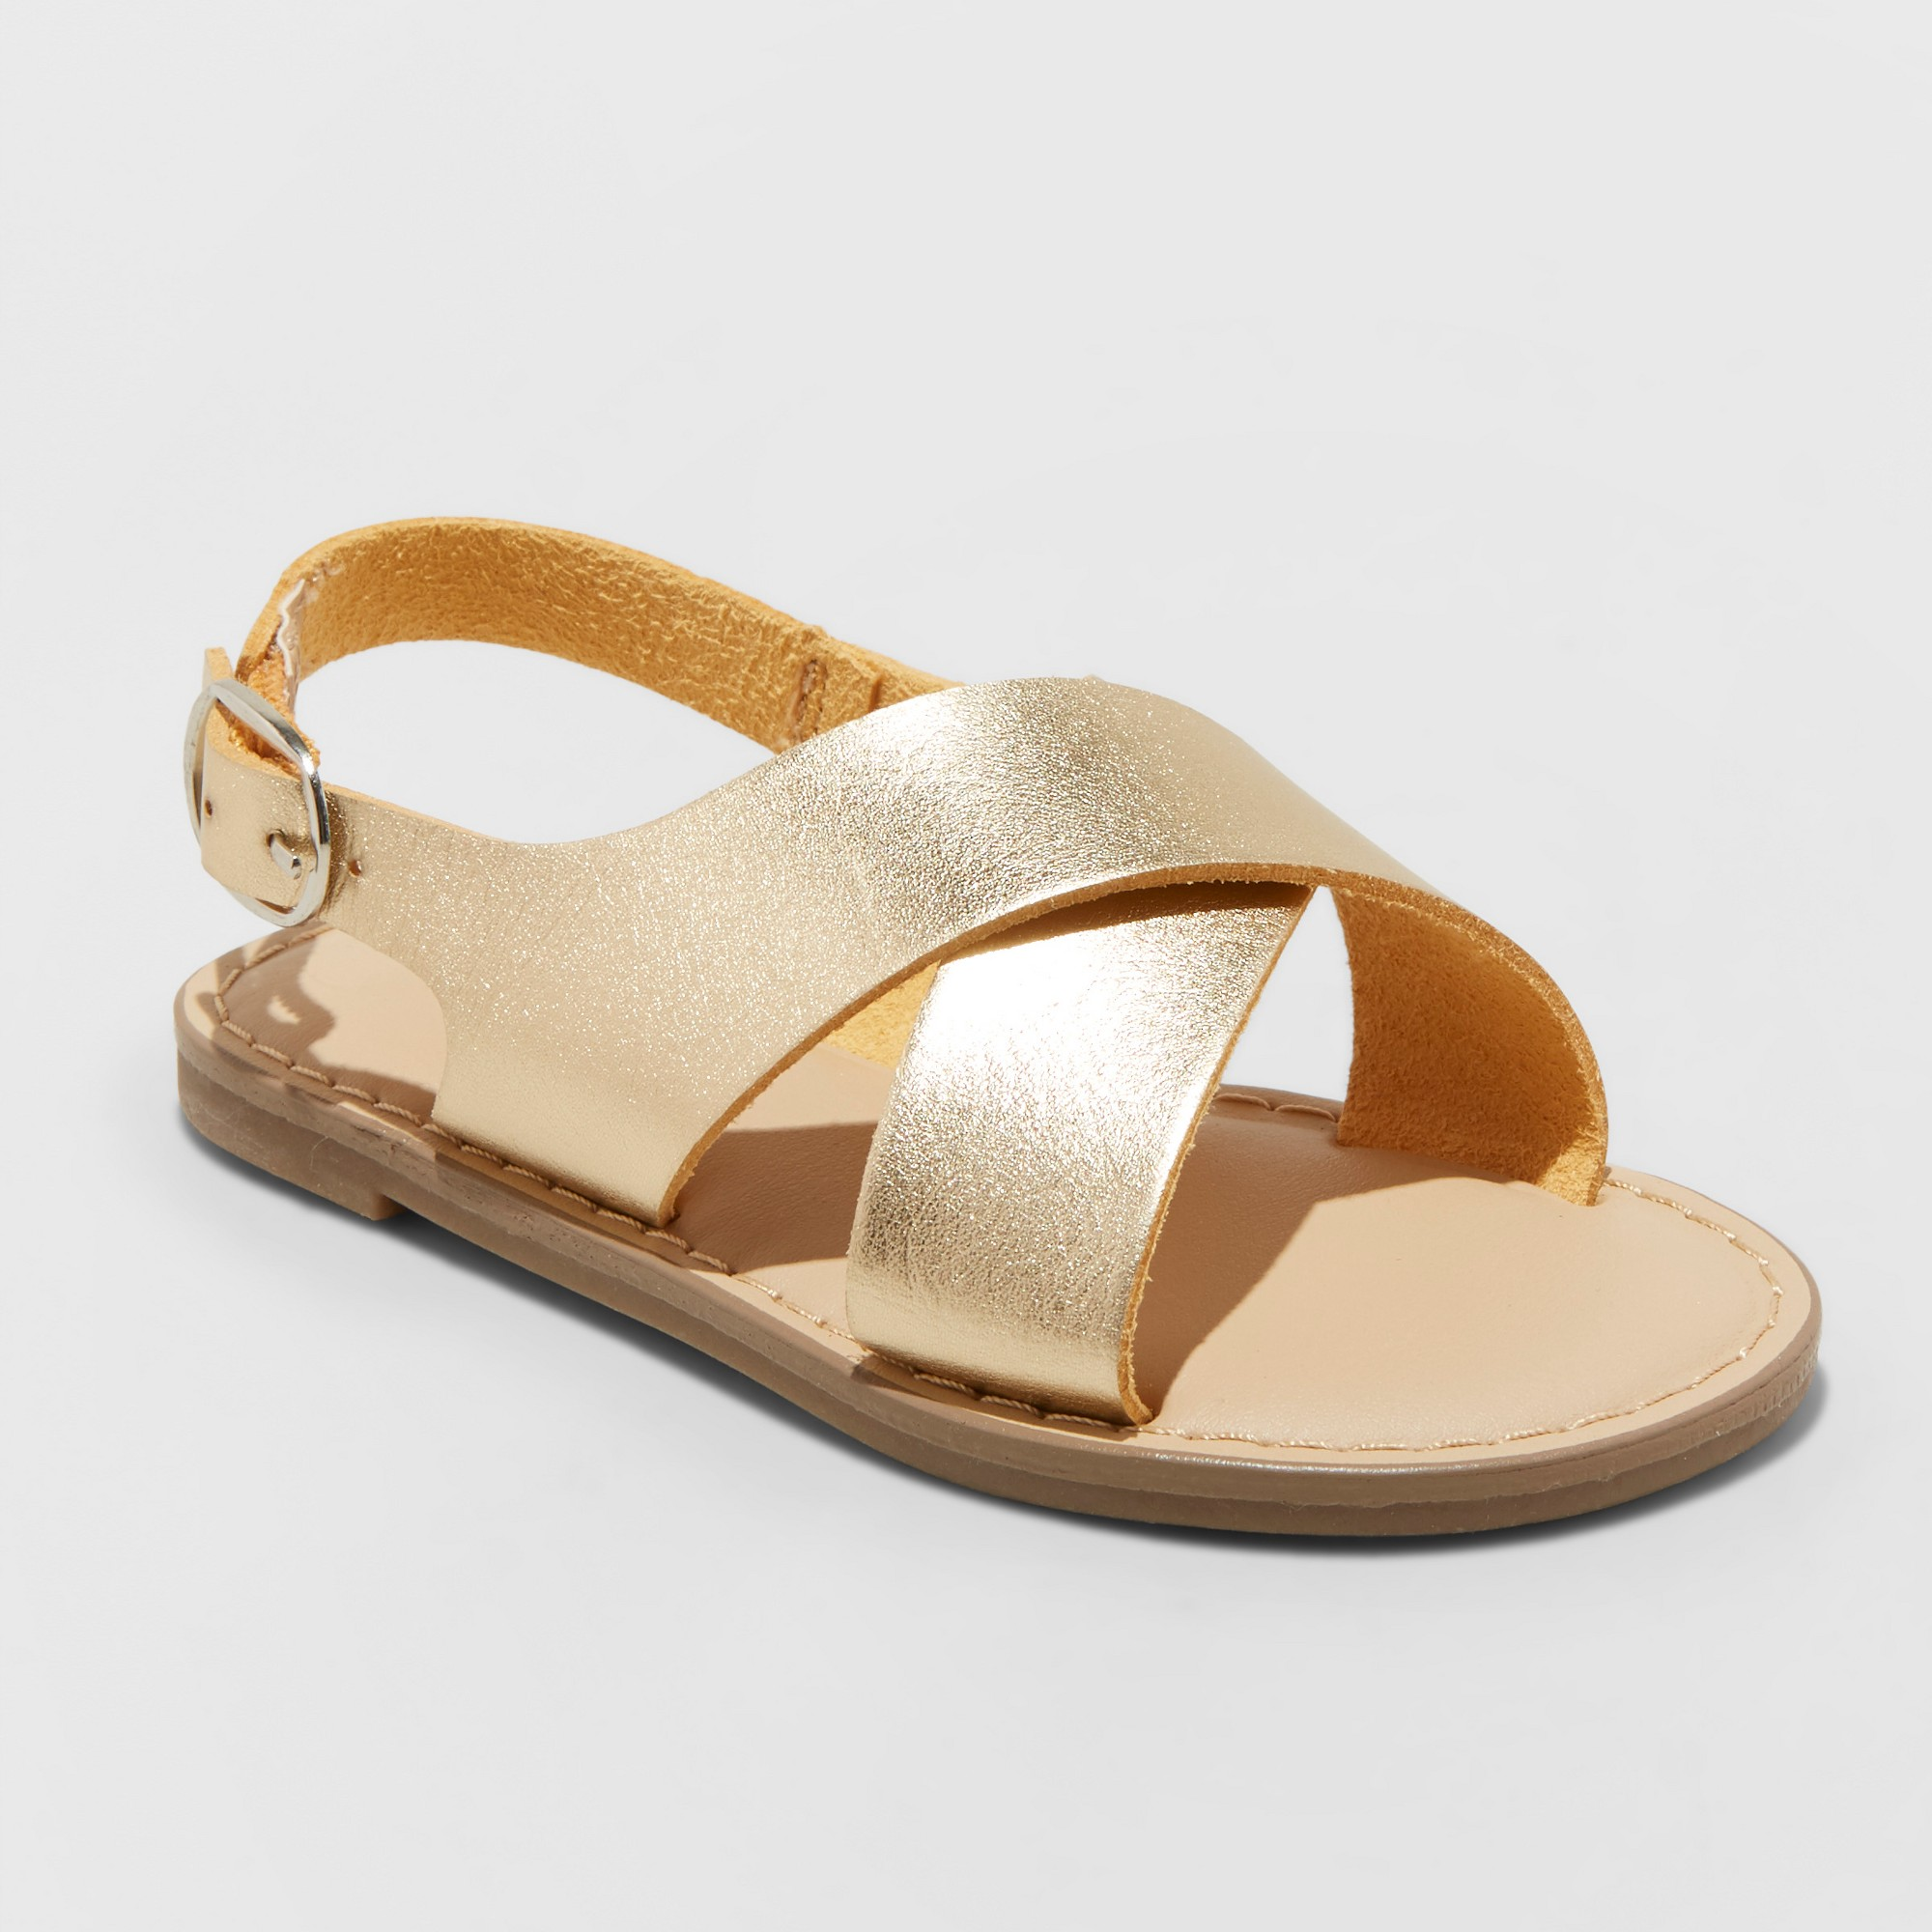 Toddler Girls/' Gail Two Piece Footbed Sandals Cat /& Jack Blue